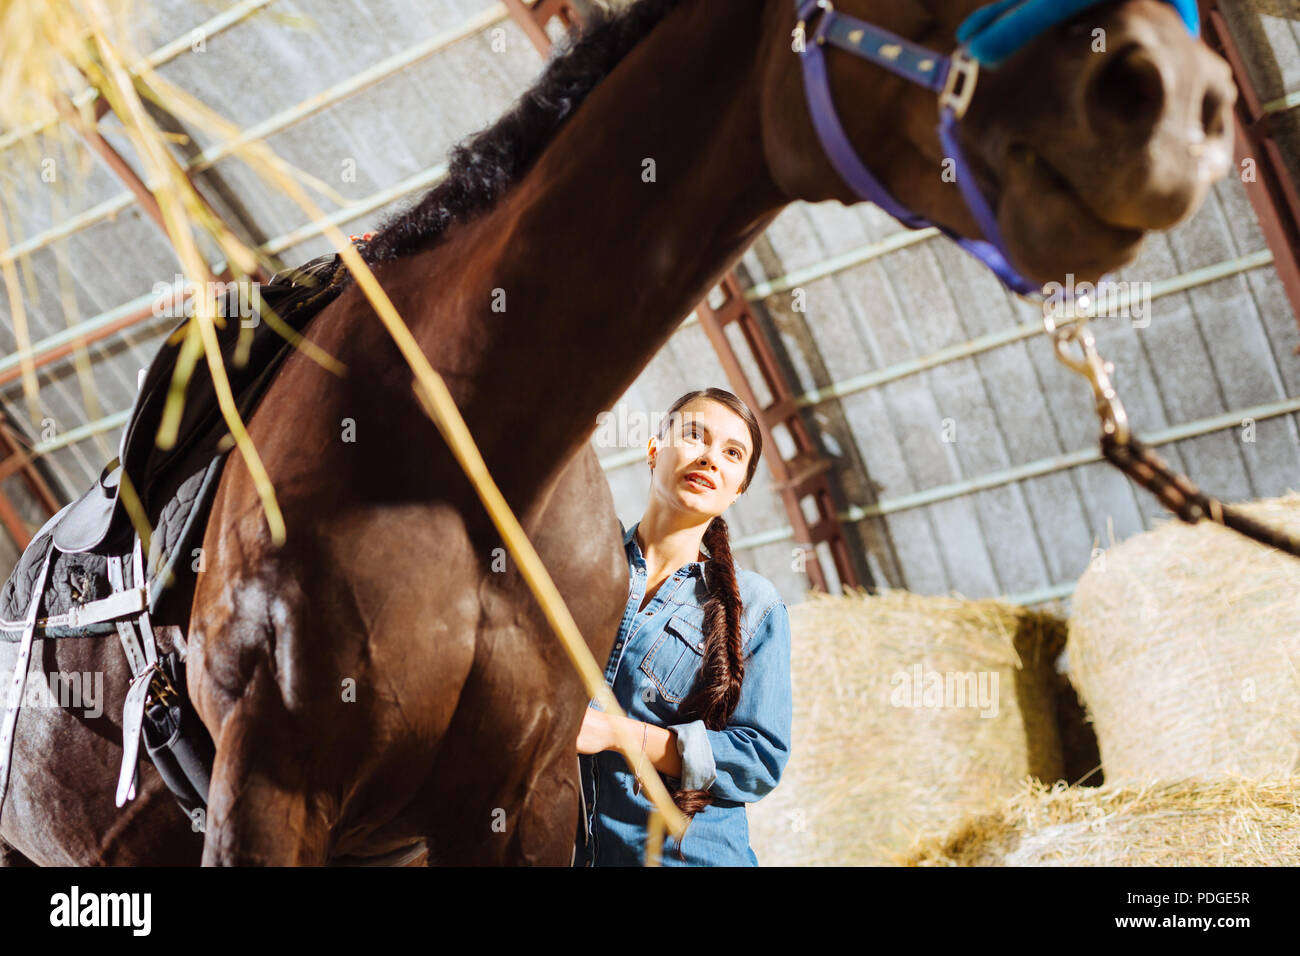 Young horsewoman with long dark hair feeding her racing horse - Stock Image